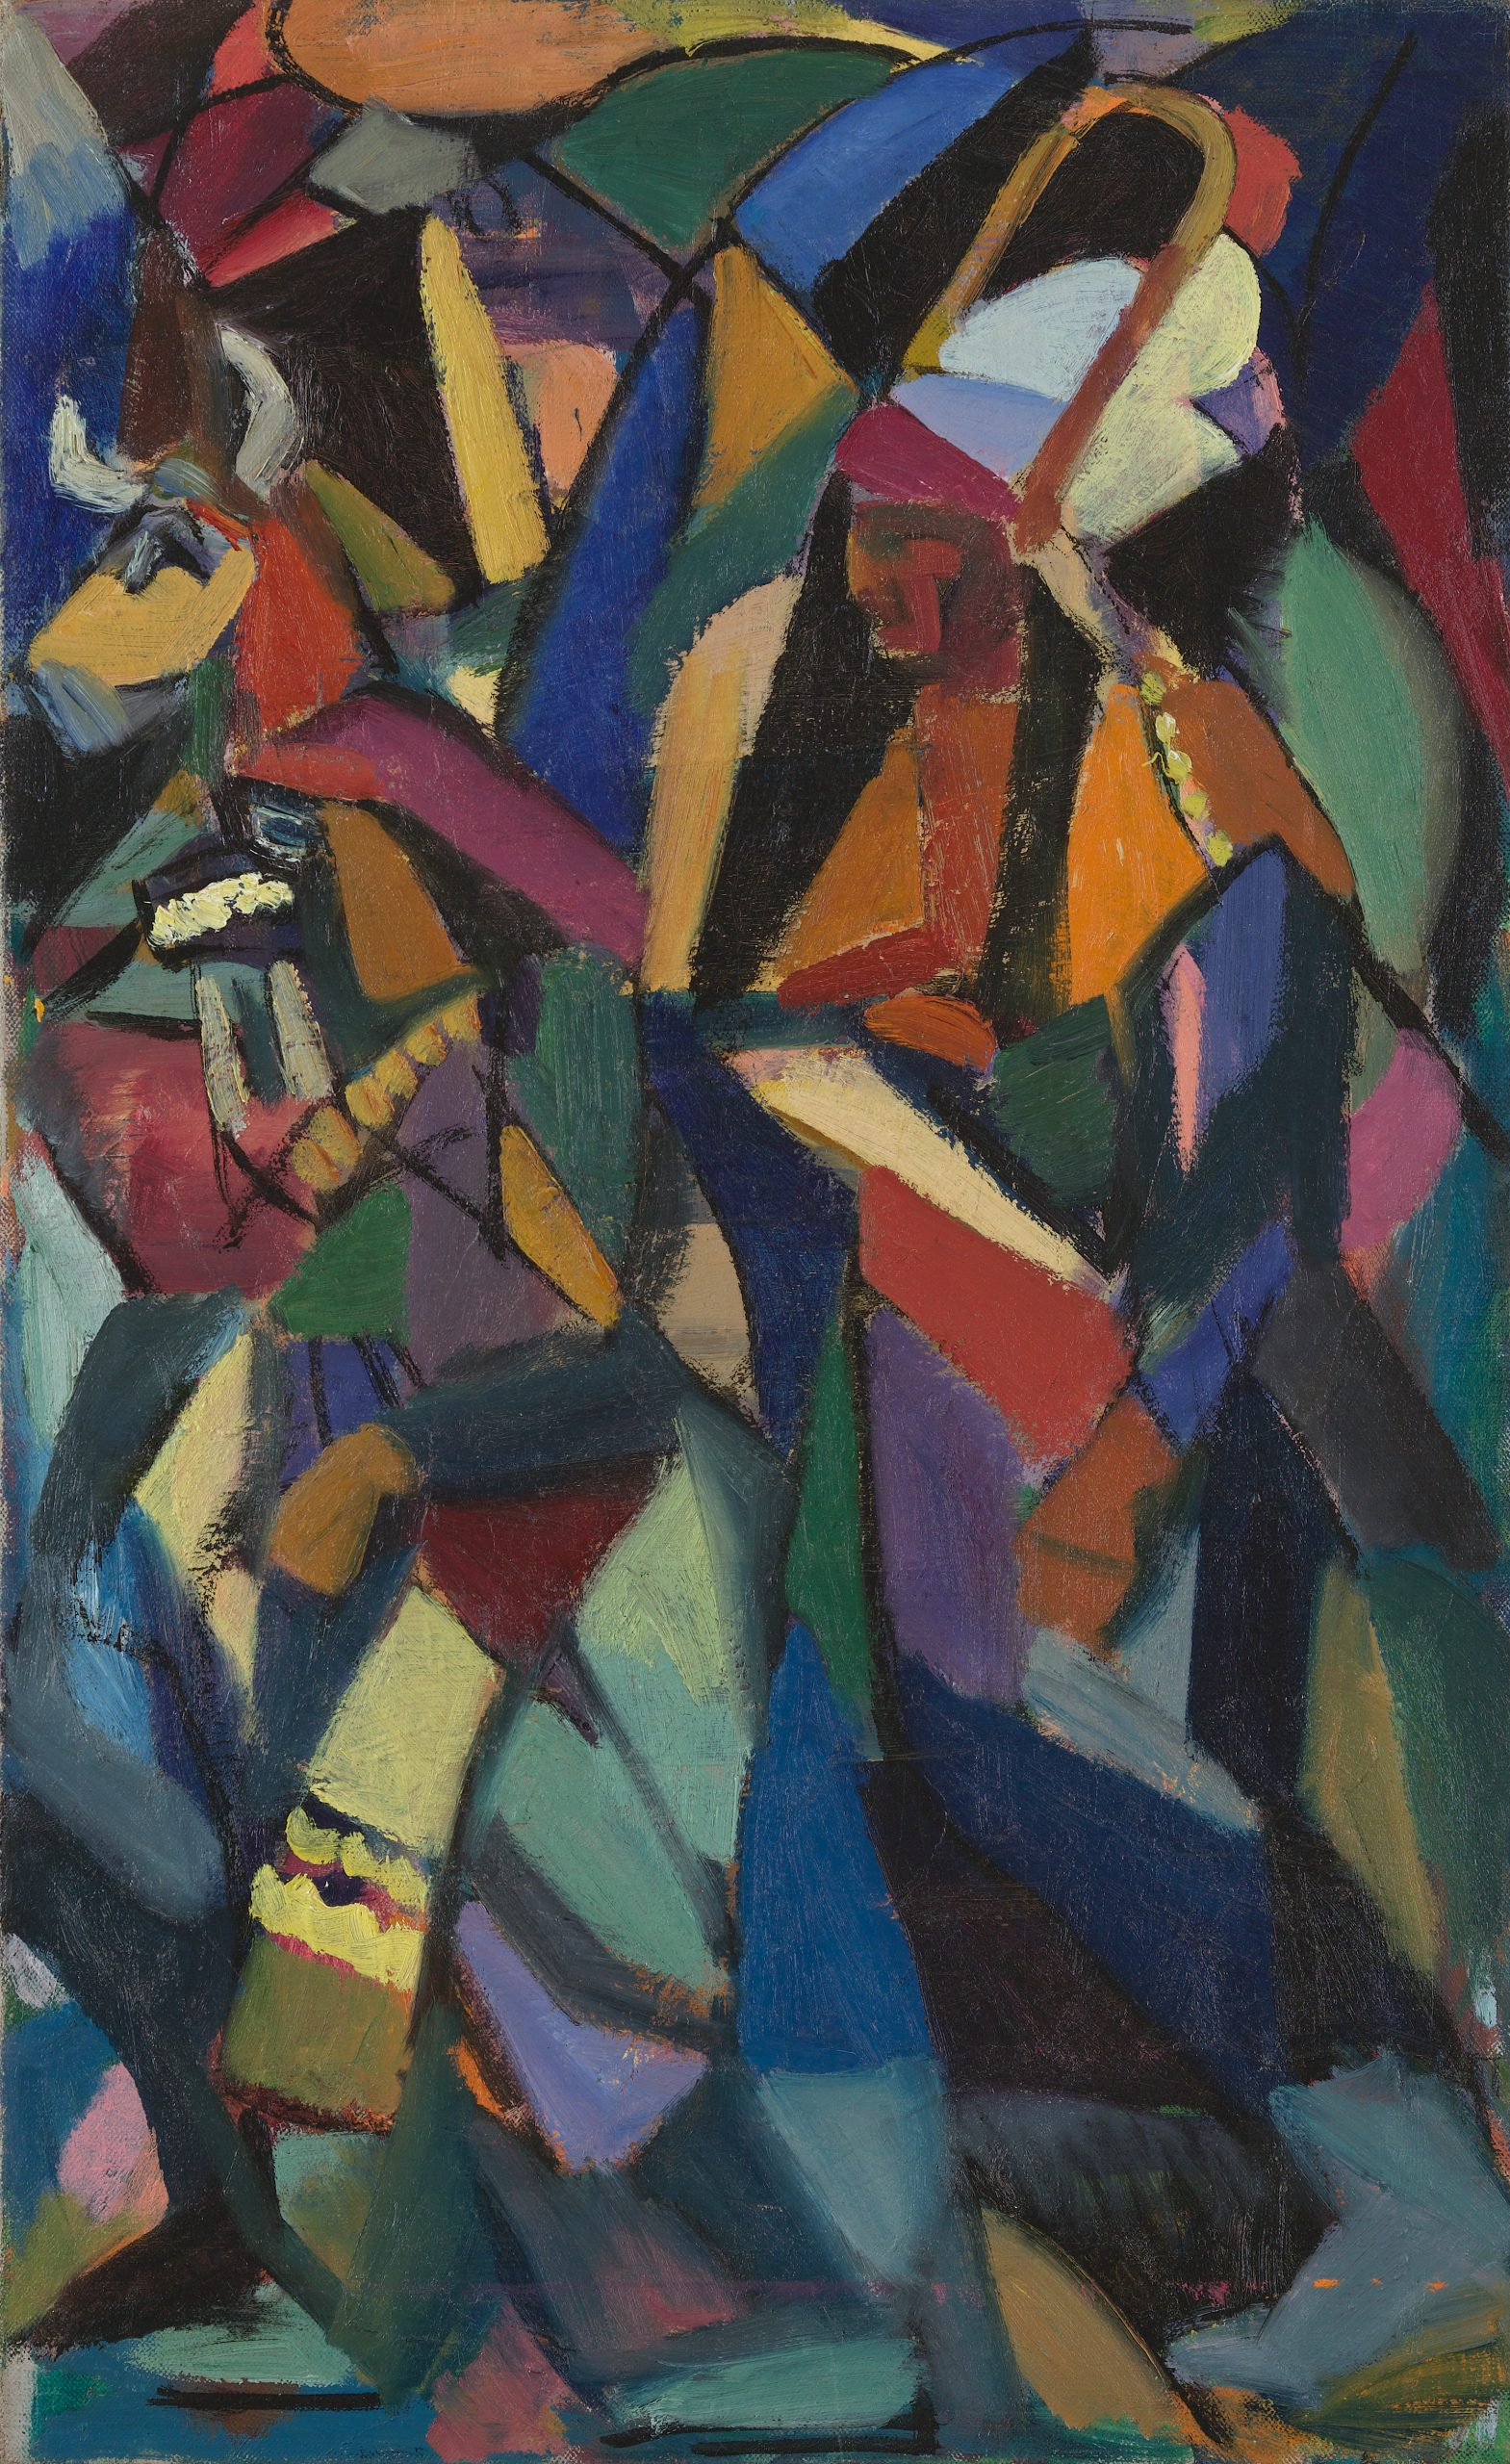 An abstraction of polygons in various colors surround Native American dancers wearing masks.